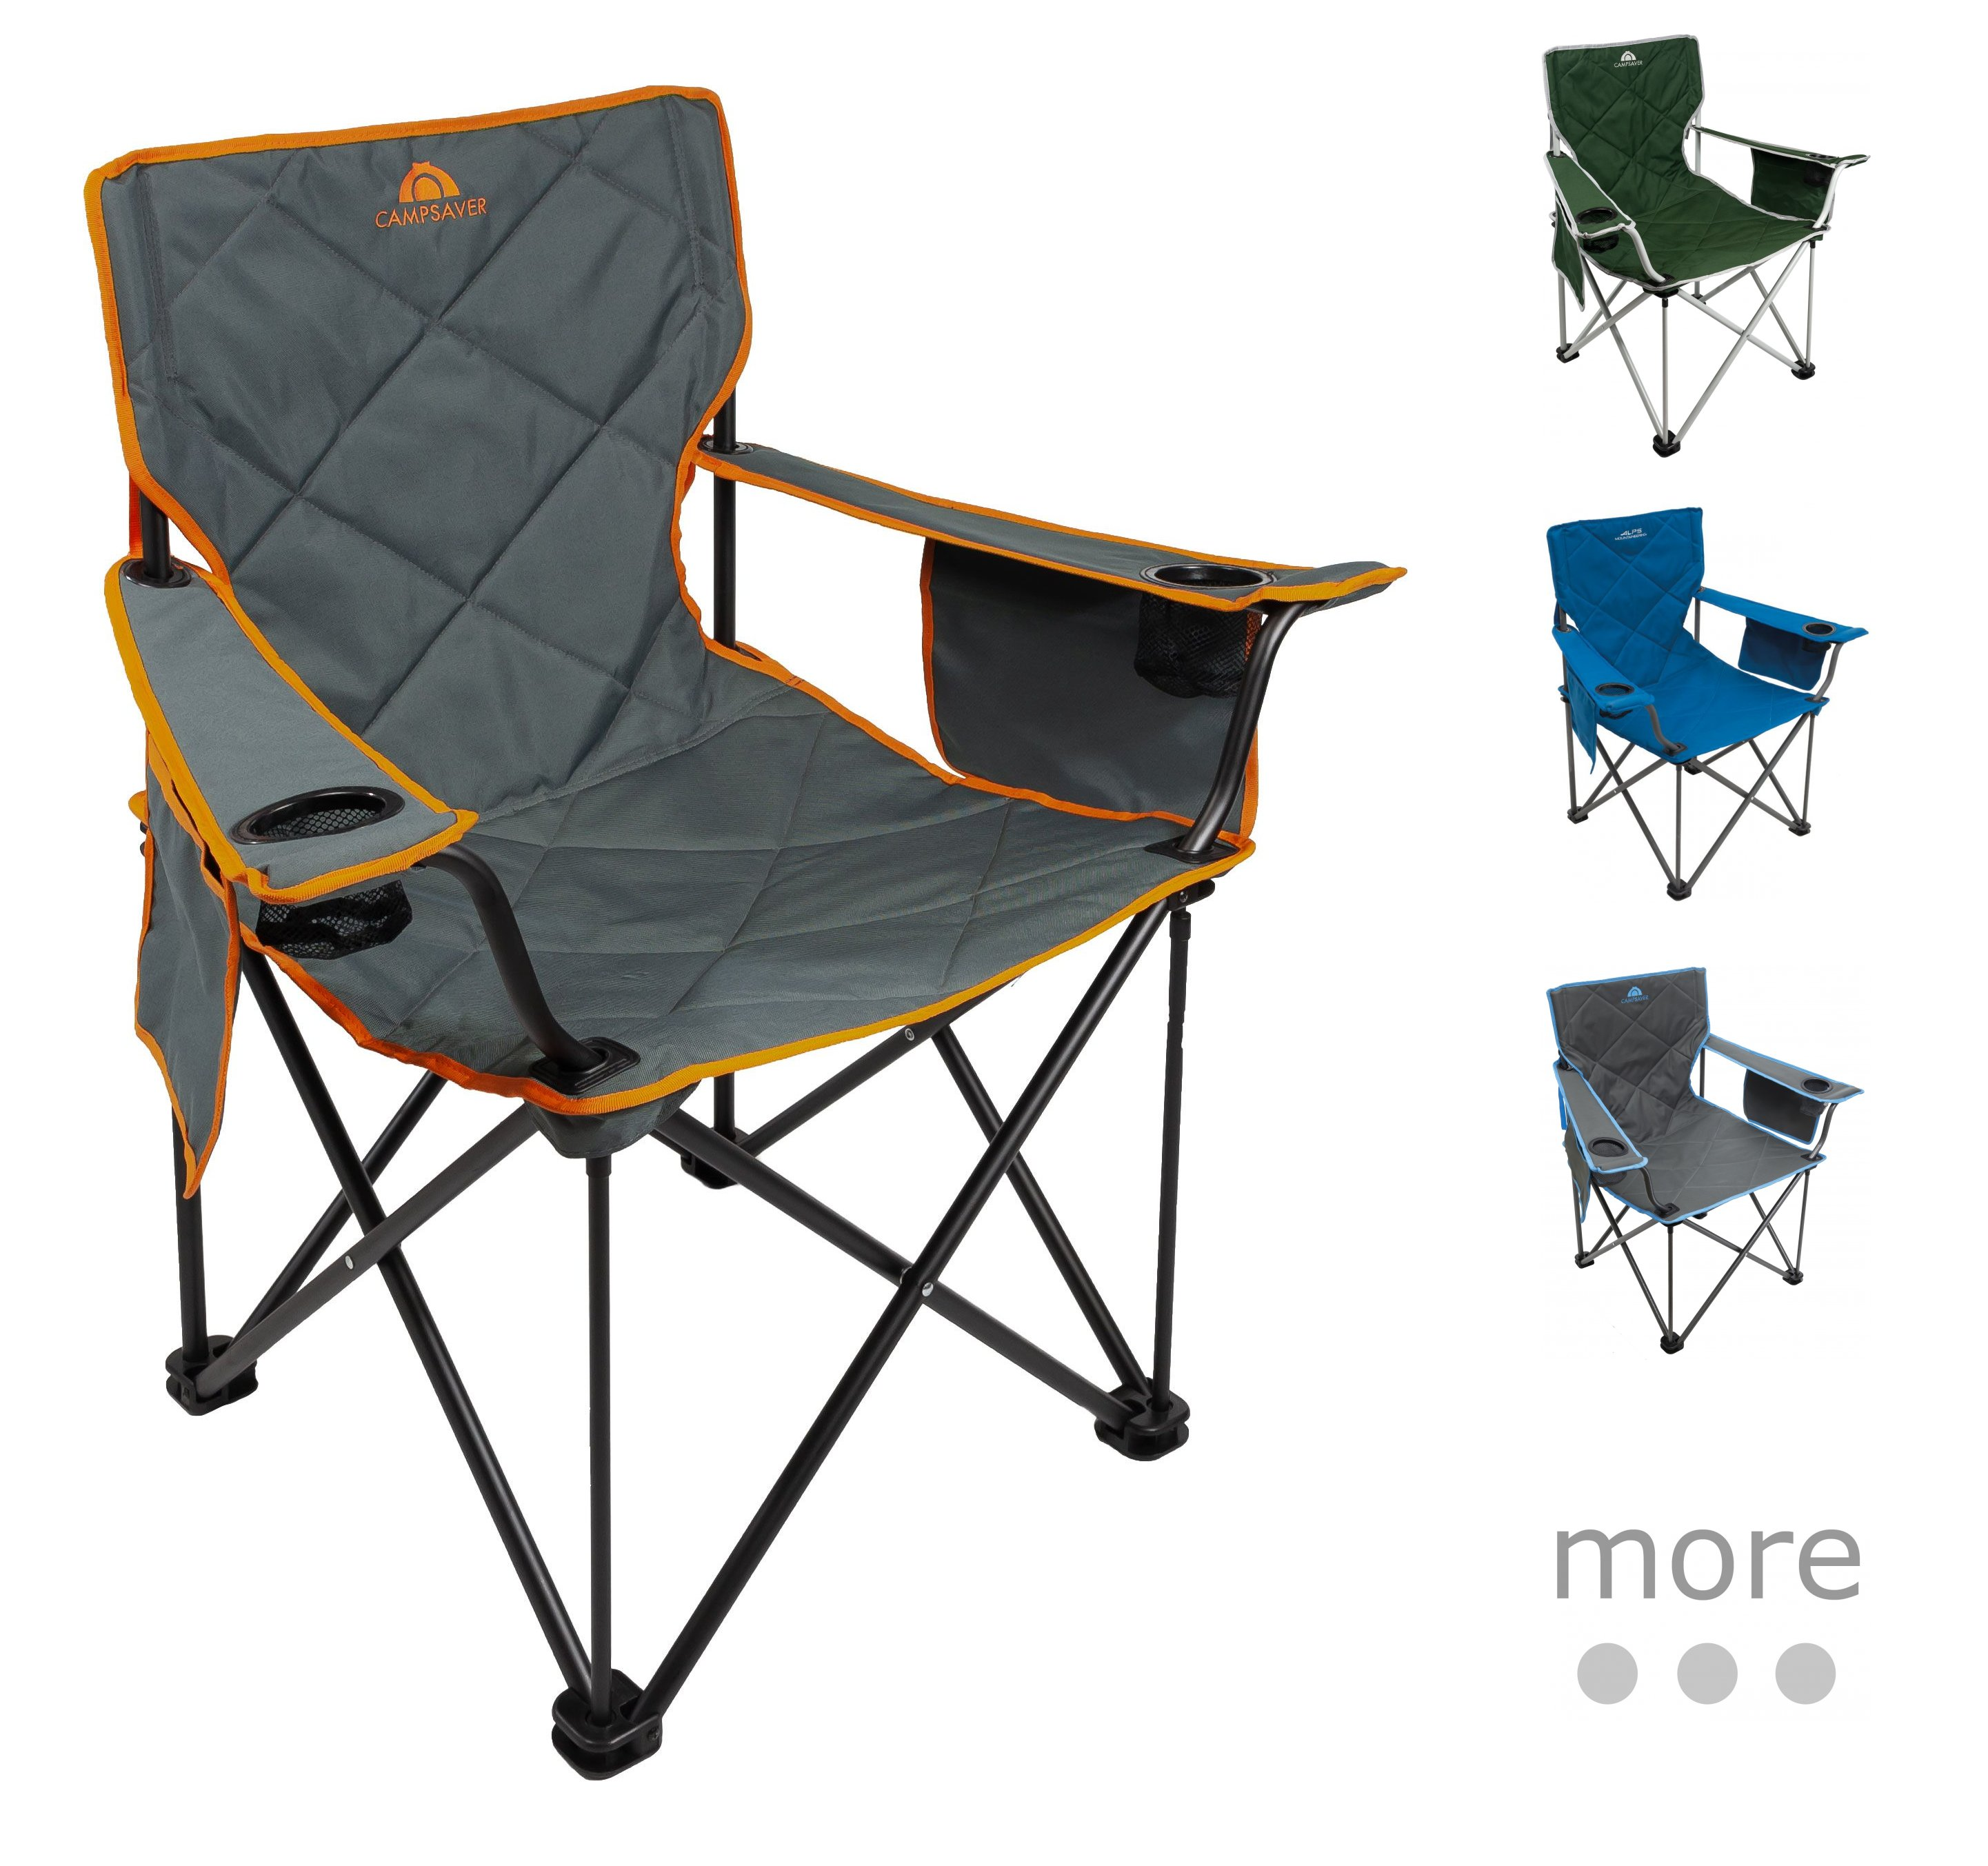 Sturdy Camping Chair Alps Mountaineering King Kong Chair